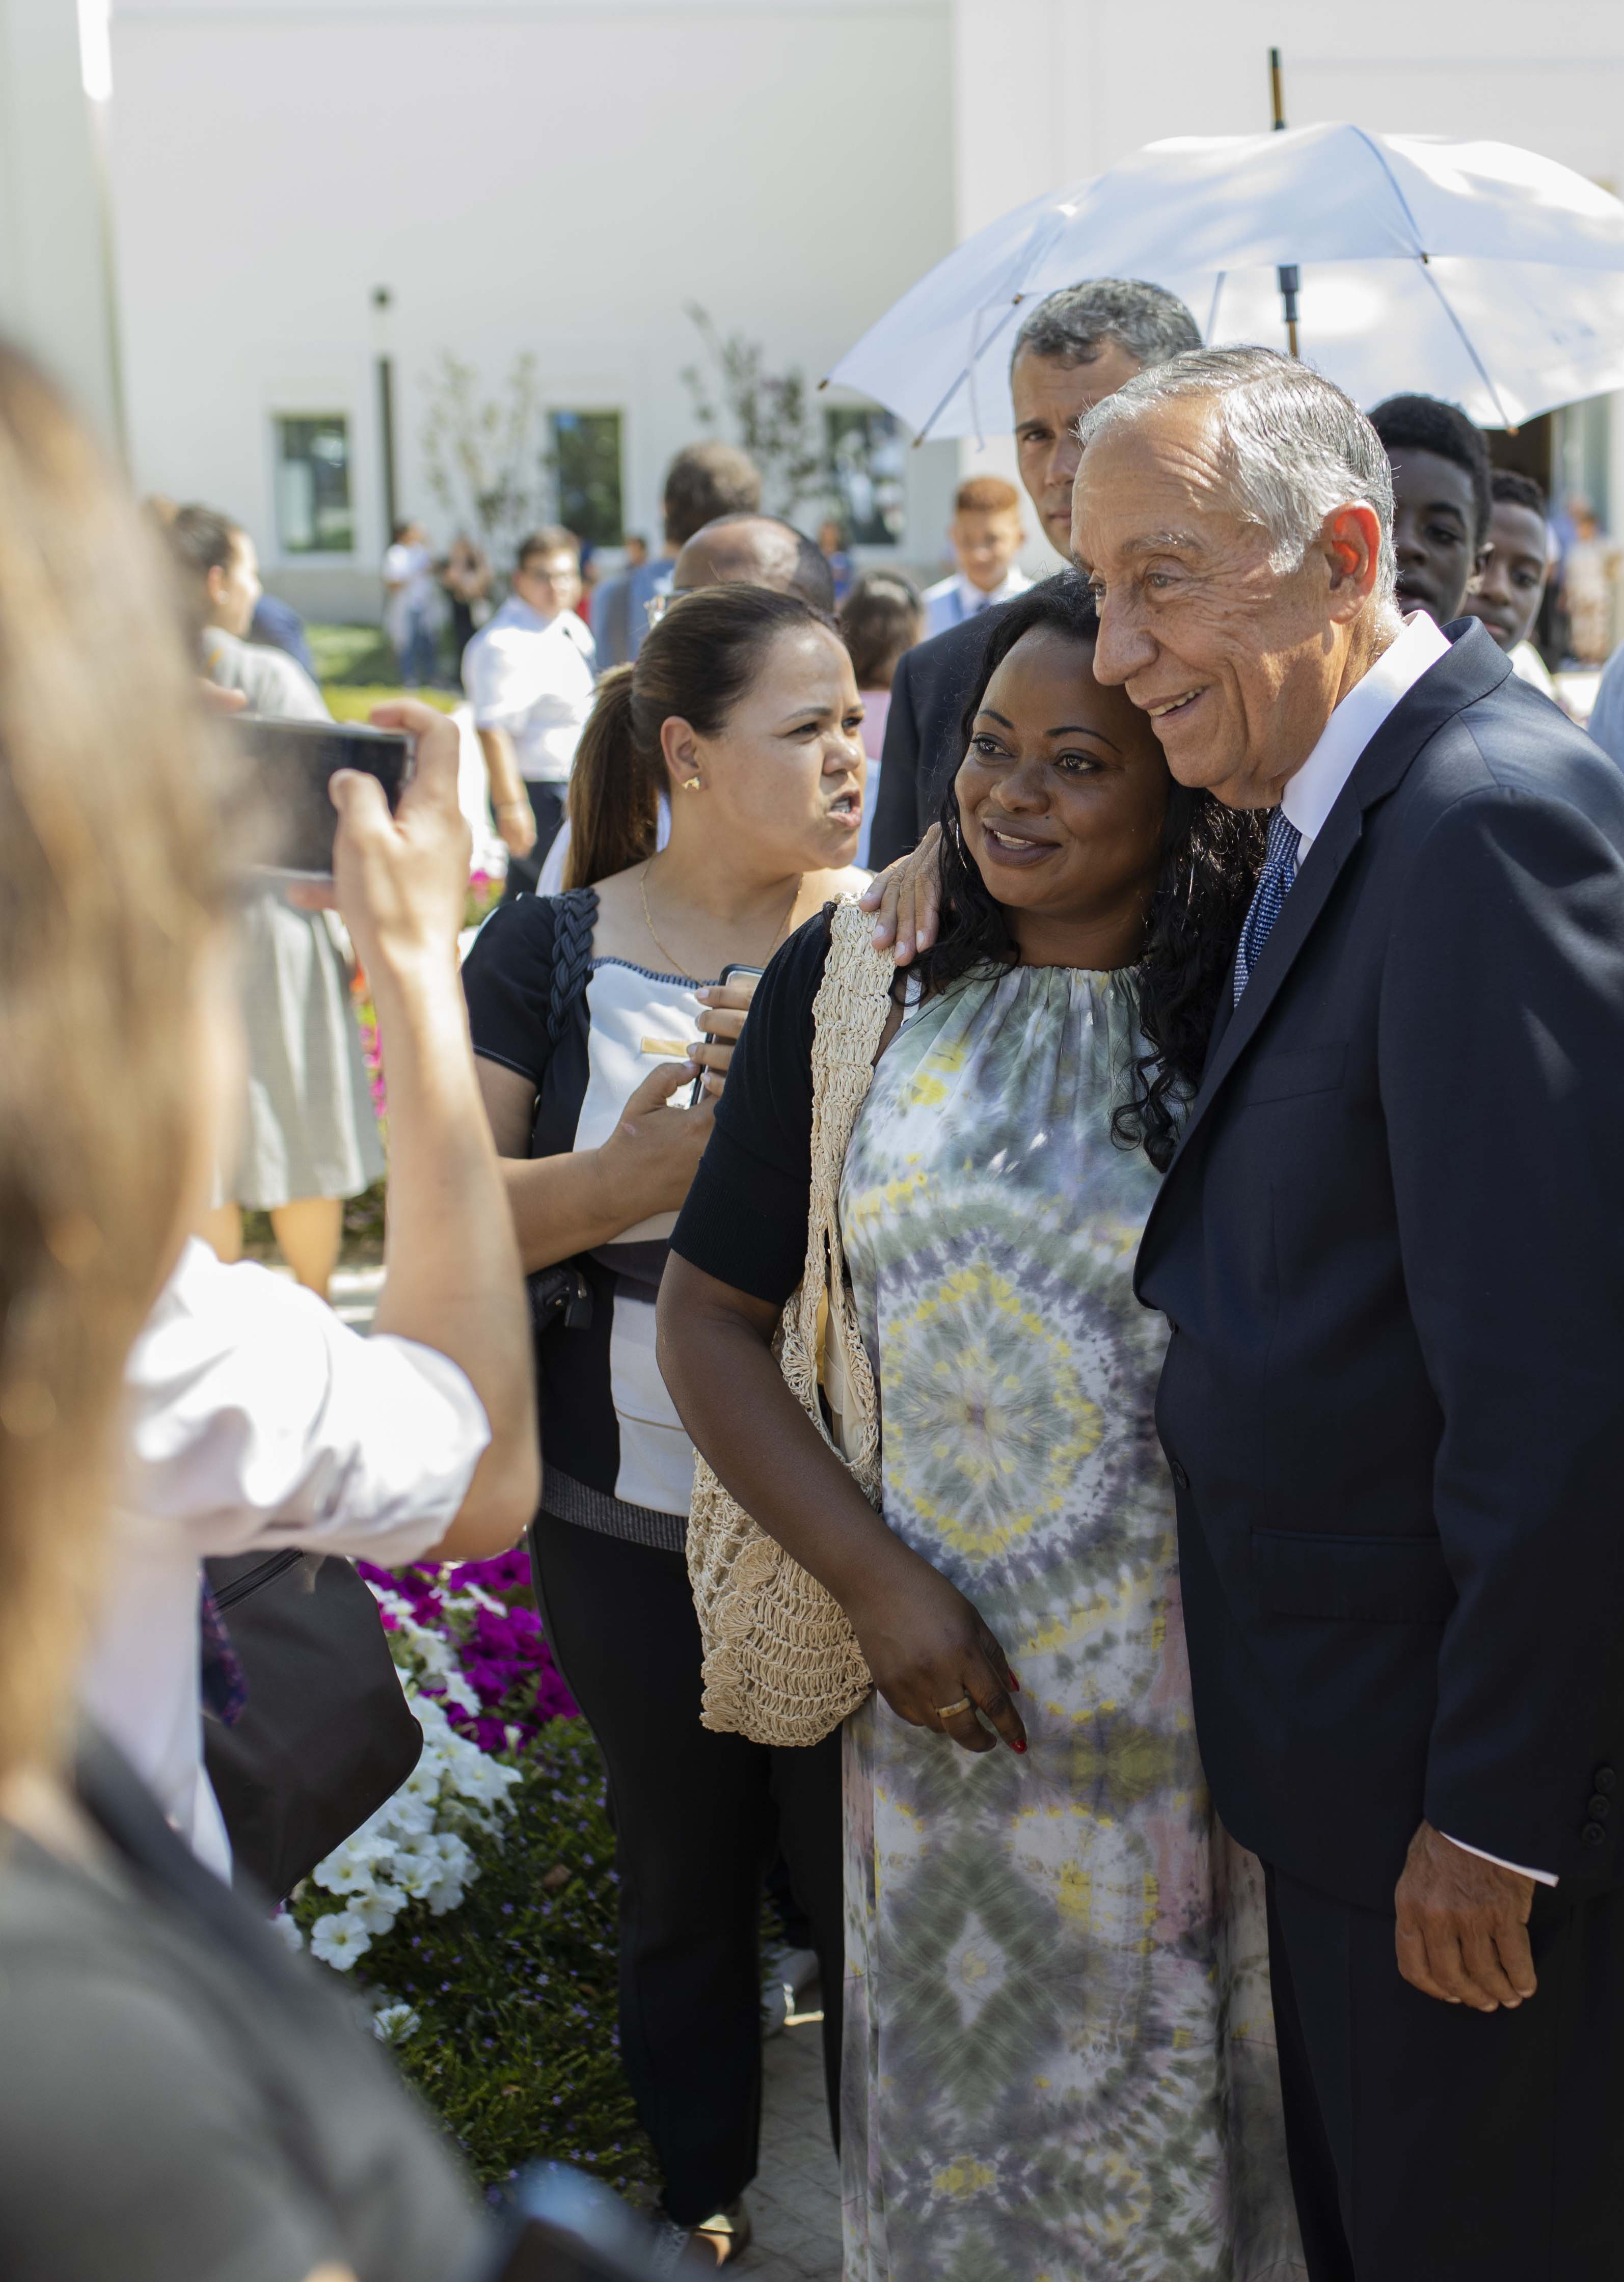 The president of Portugal, Marcelo Rebelo de Sousa, greets members of the Church who attend the Lisbon Portugal Temple open house on Aug. 29, 2019.